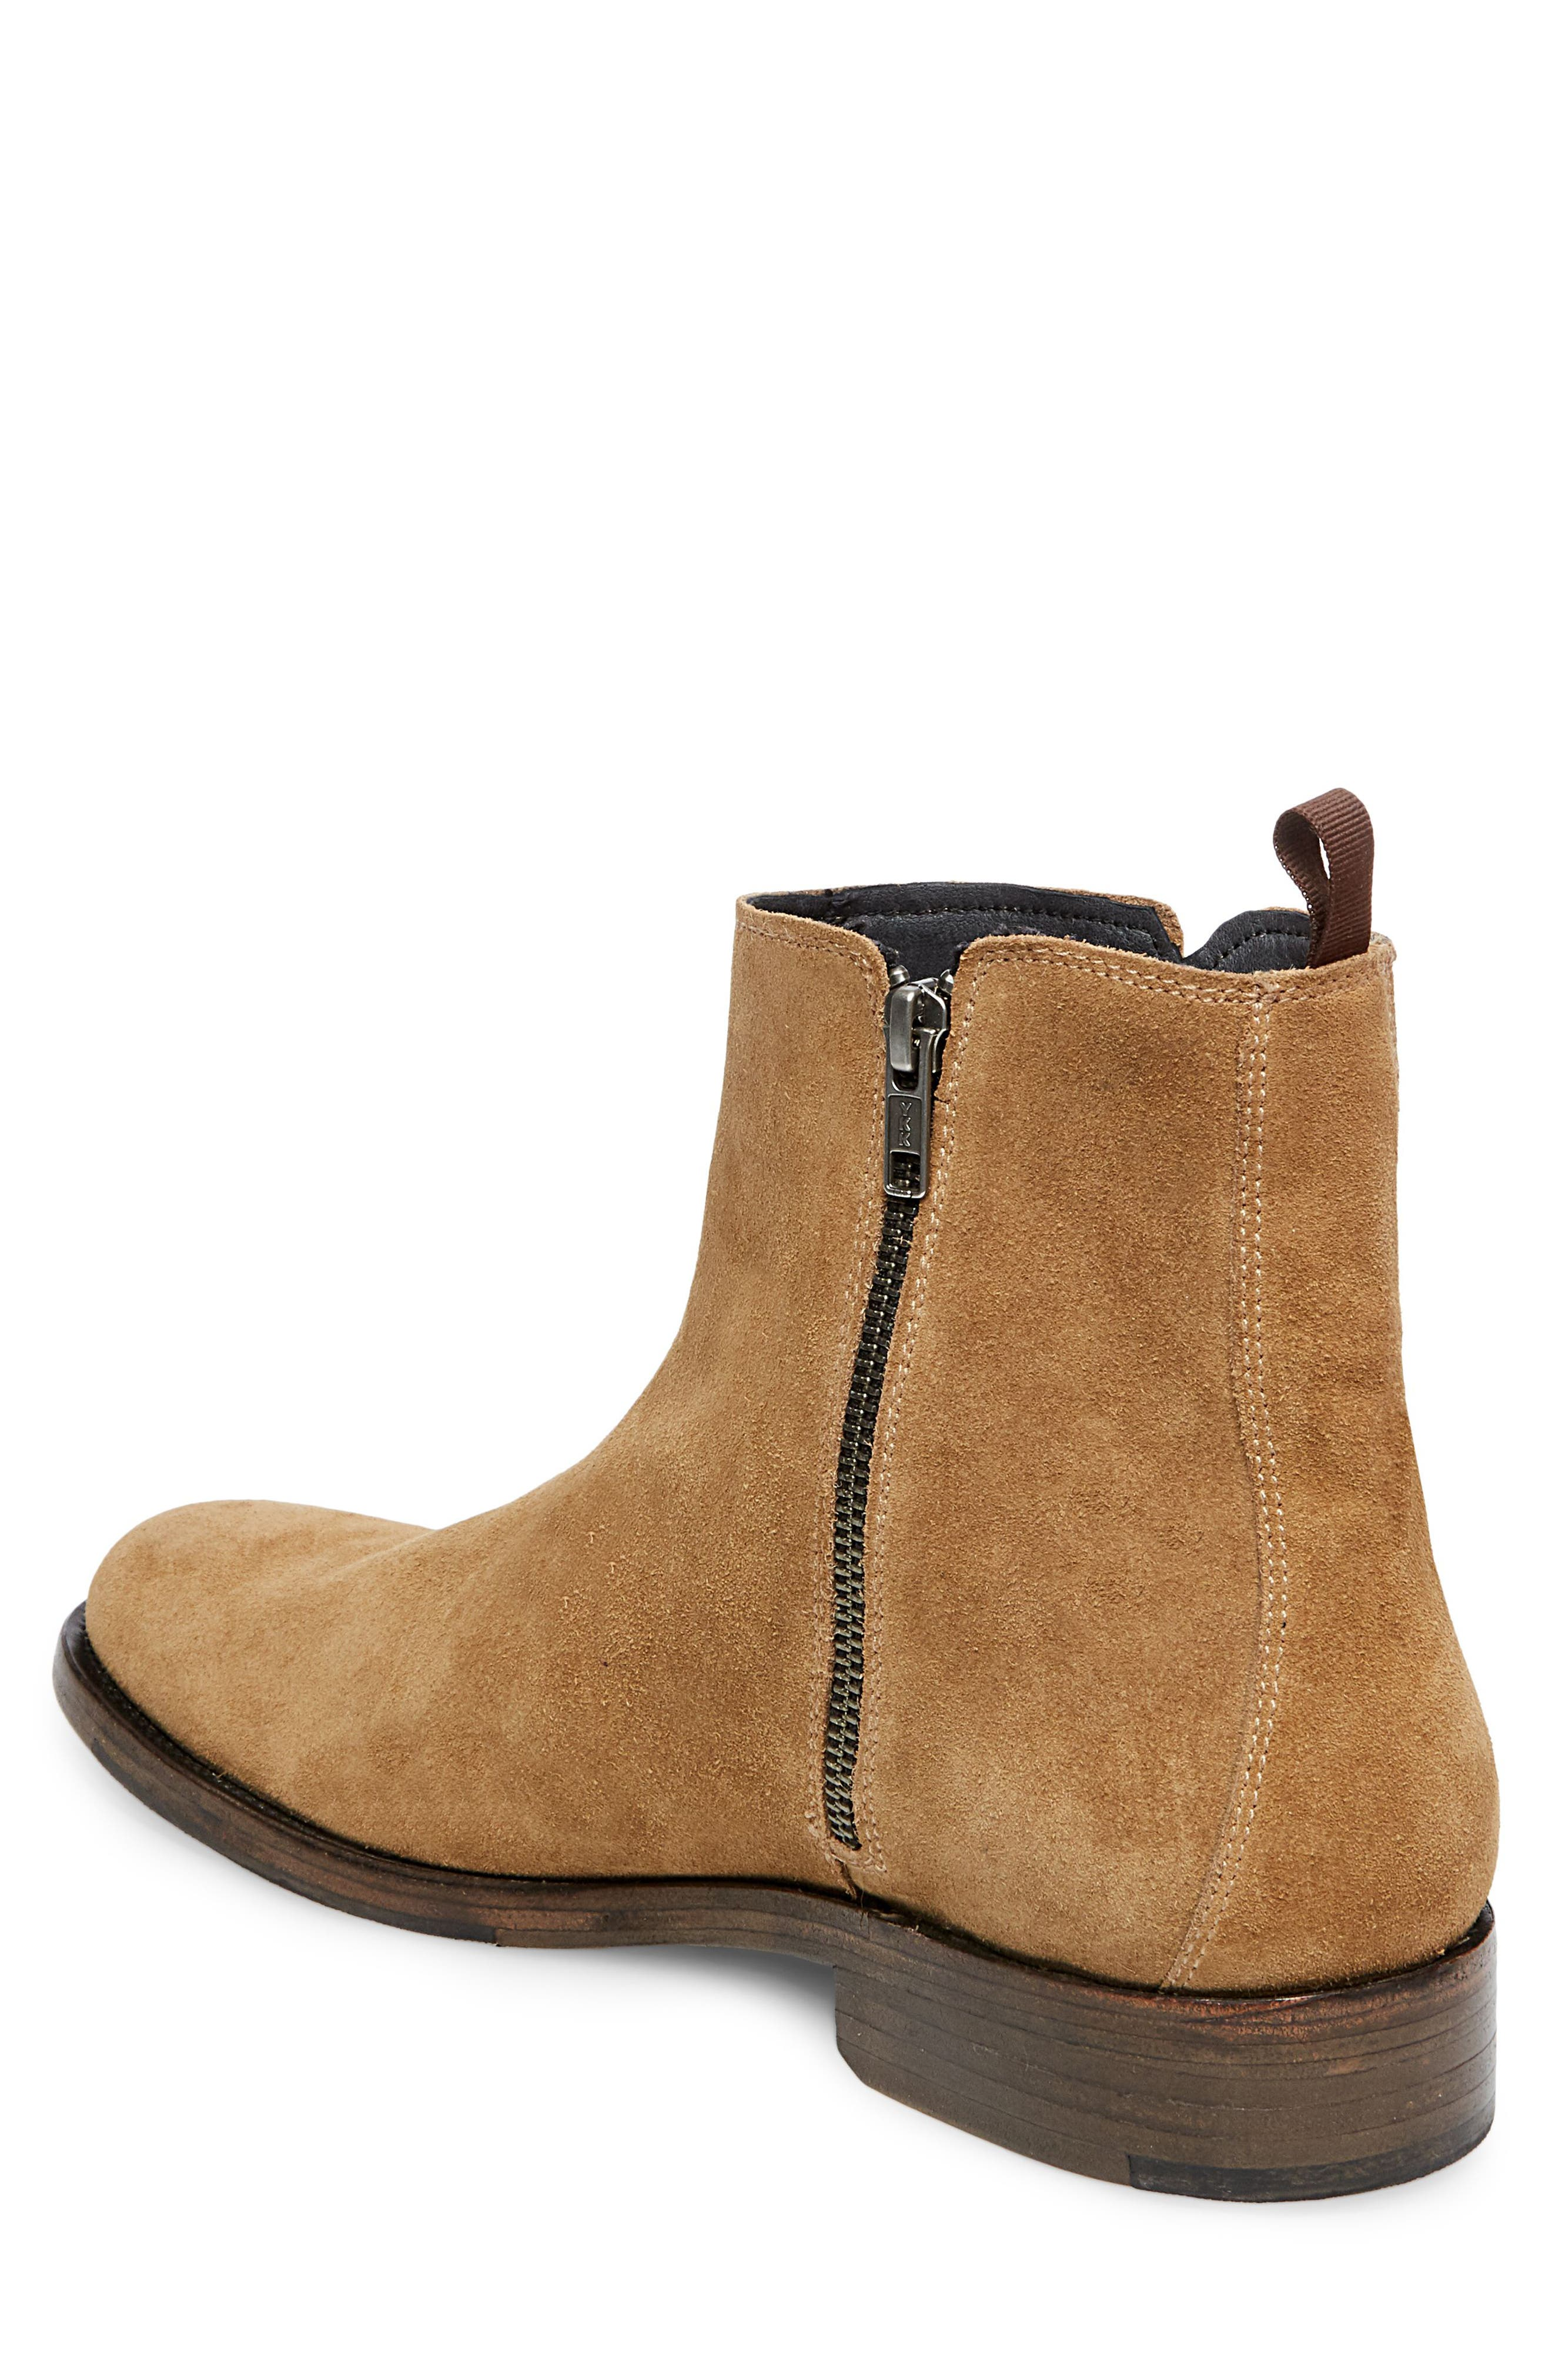 Alternate Image 2  - Steve Madden x GQ Fred Zip Boot (Men)